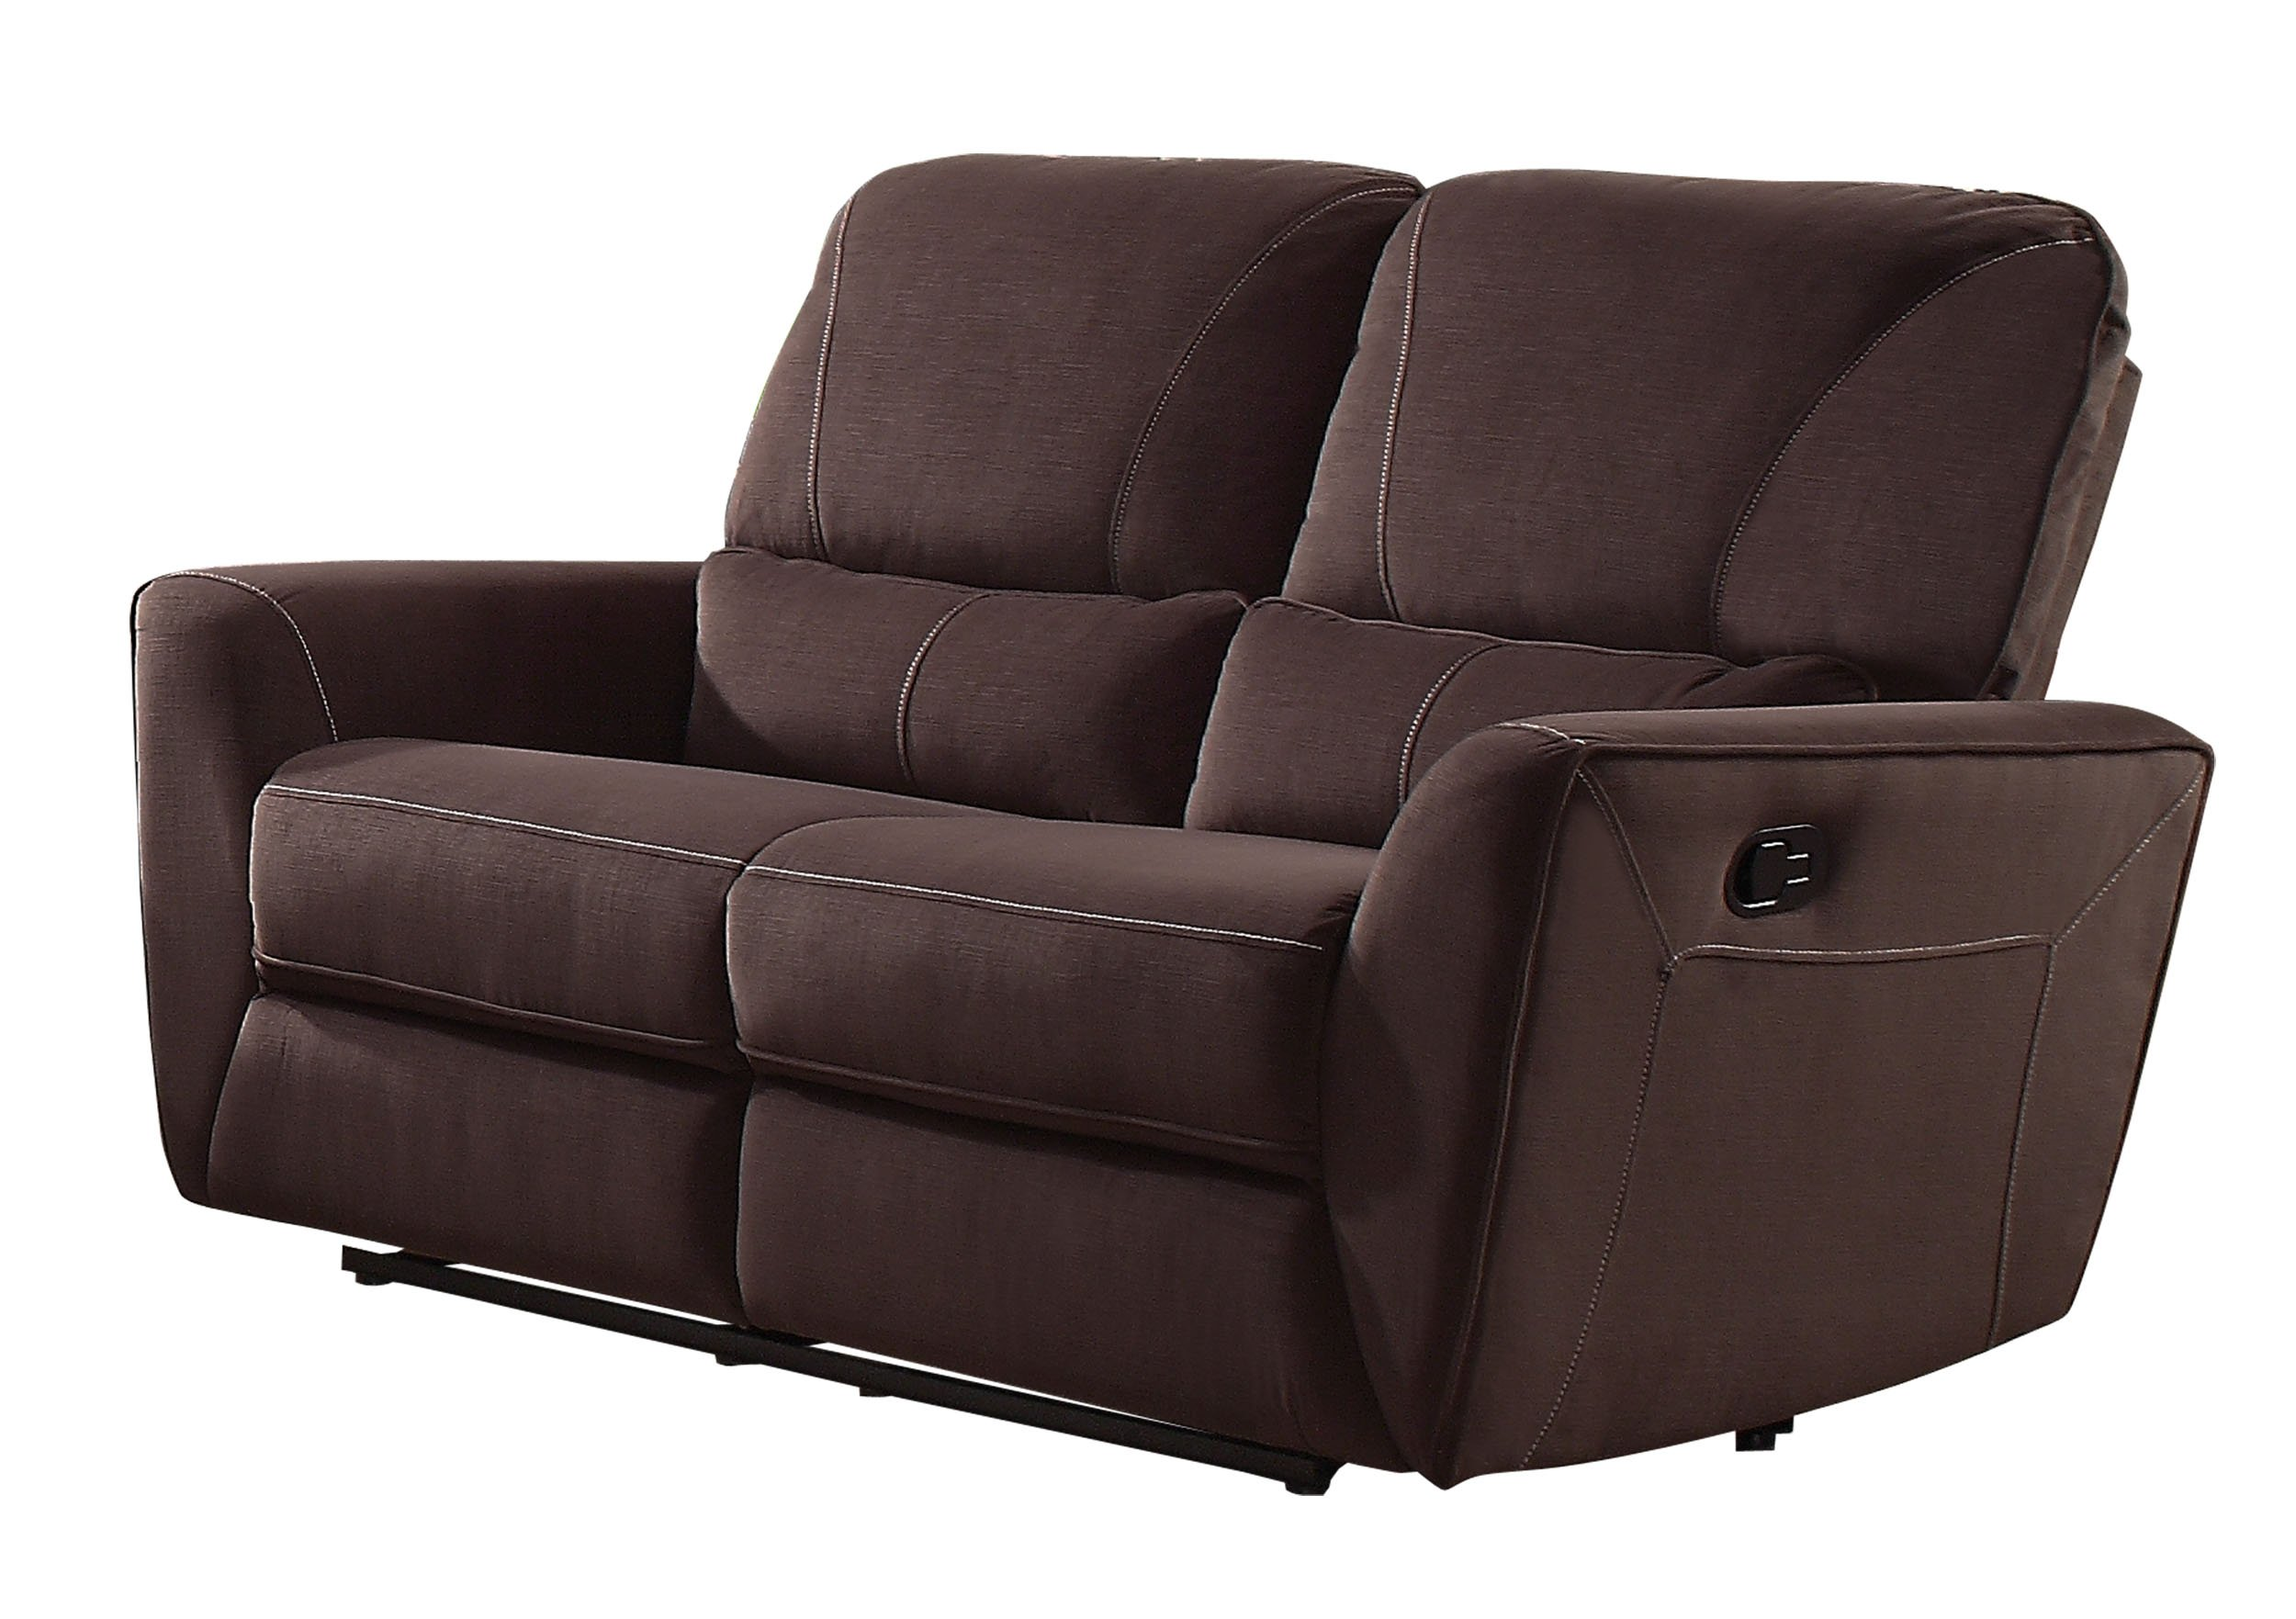 Homelegance Dowling 63'' Fabric Upholstered Reclining Loveseat, Brown